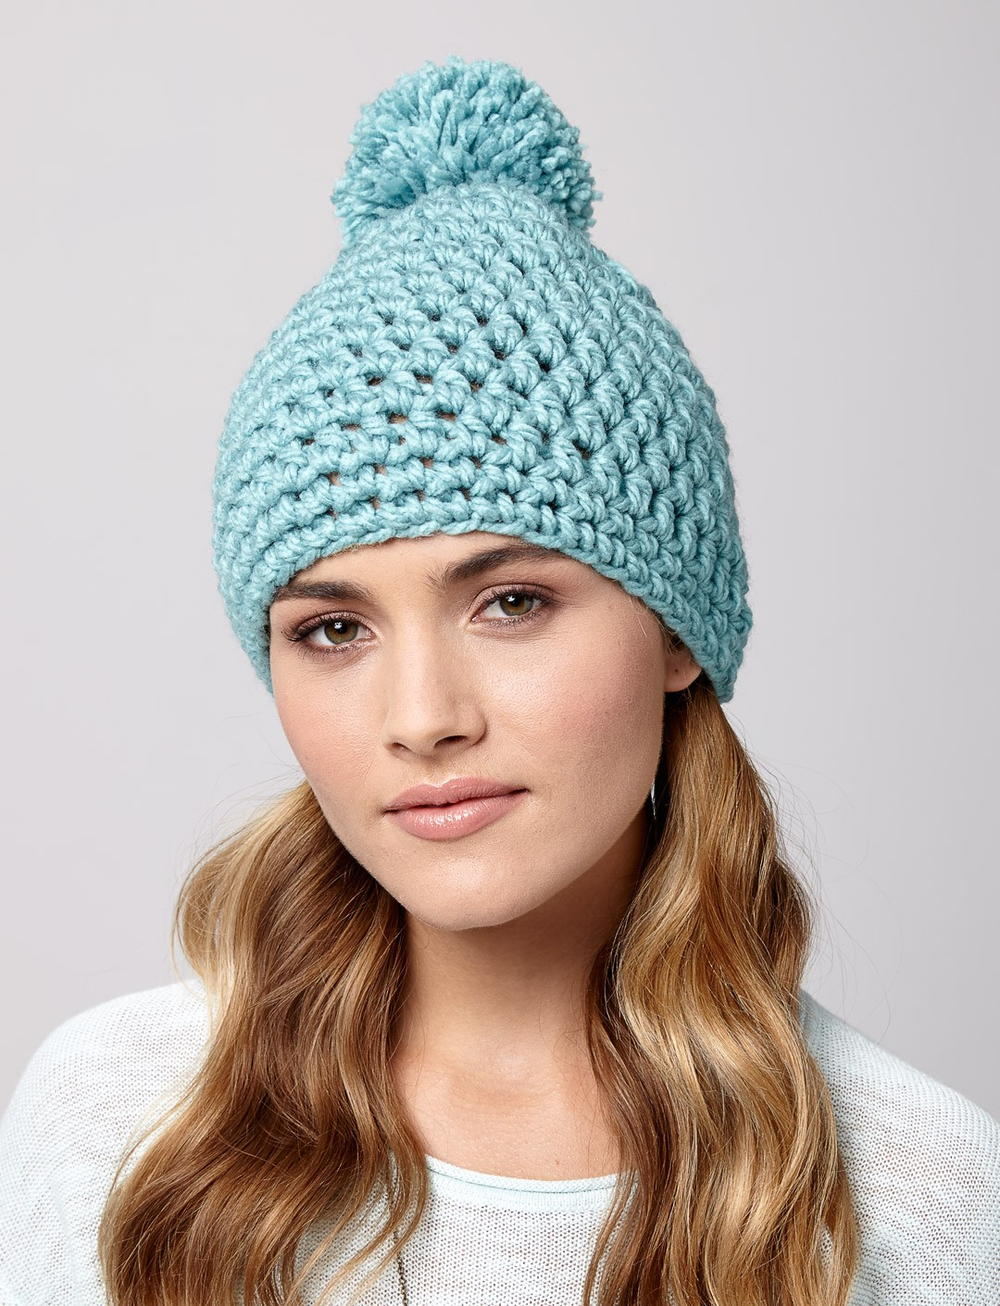 Www All Free Crochet Com : Snow Drift Crochet Hat AllFreeCrochet.com